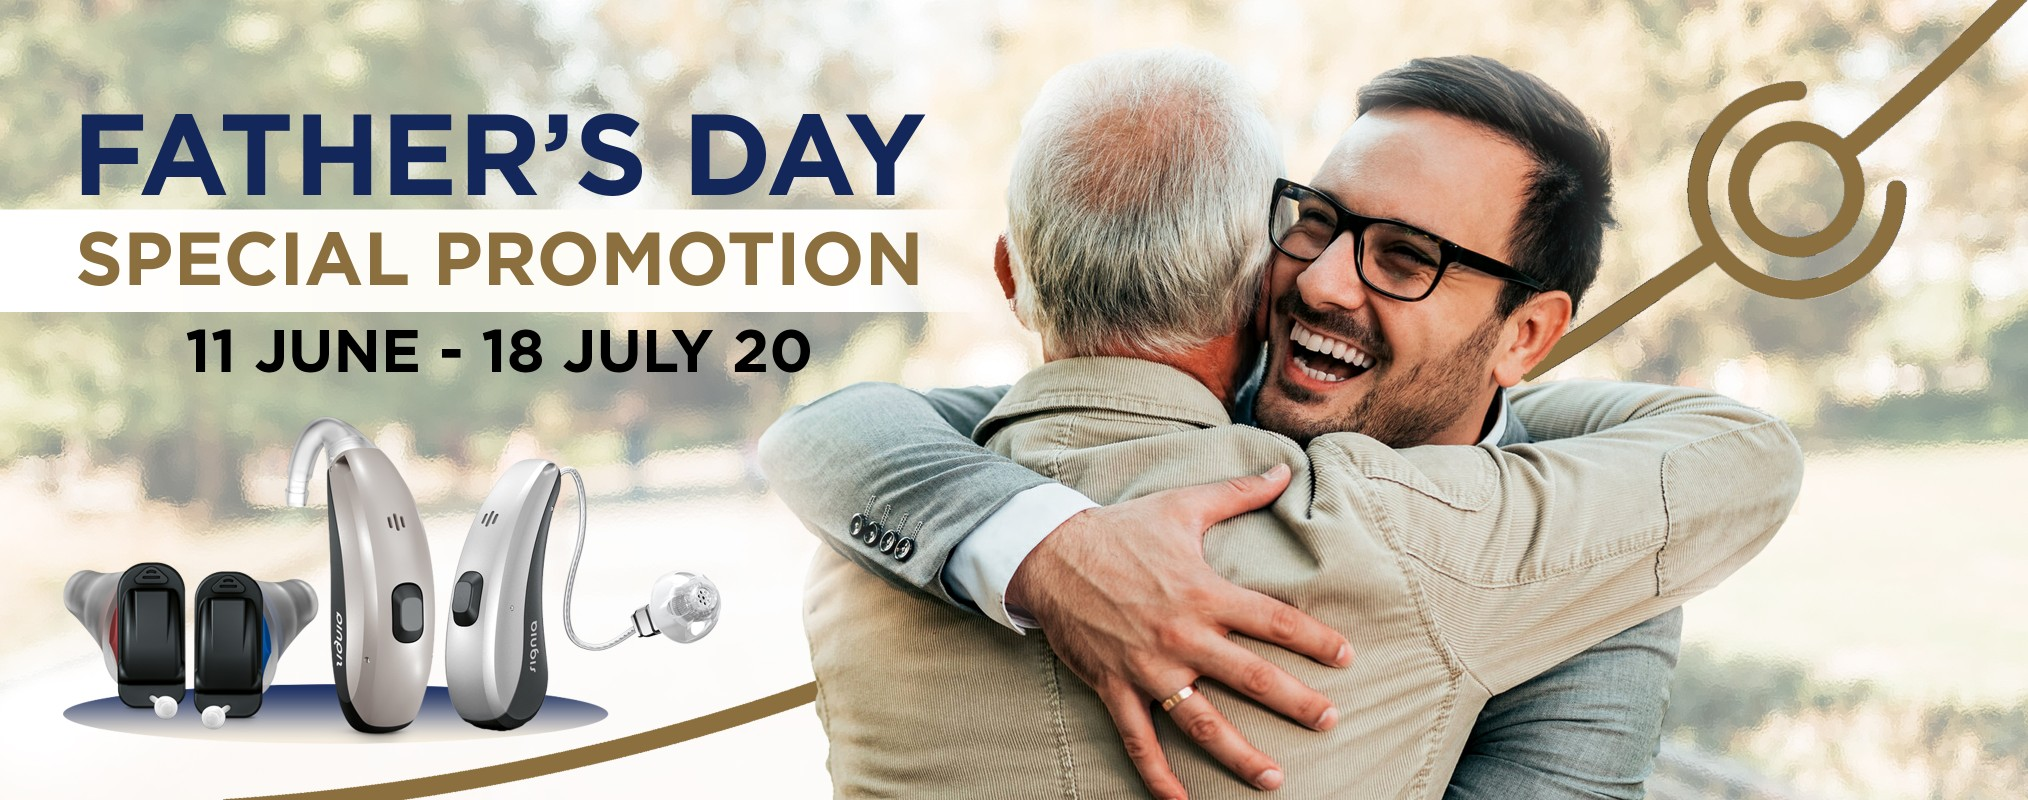 Father's Day Promotion - Desktop